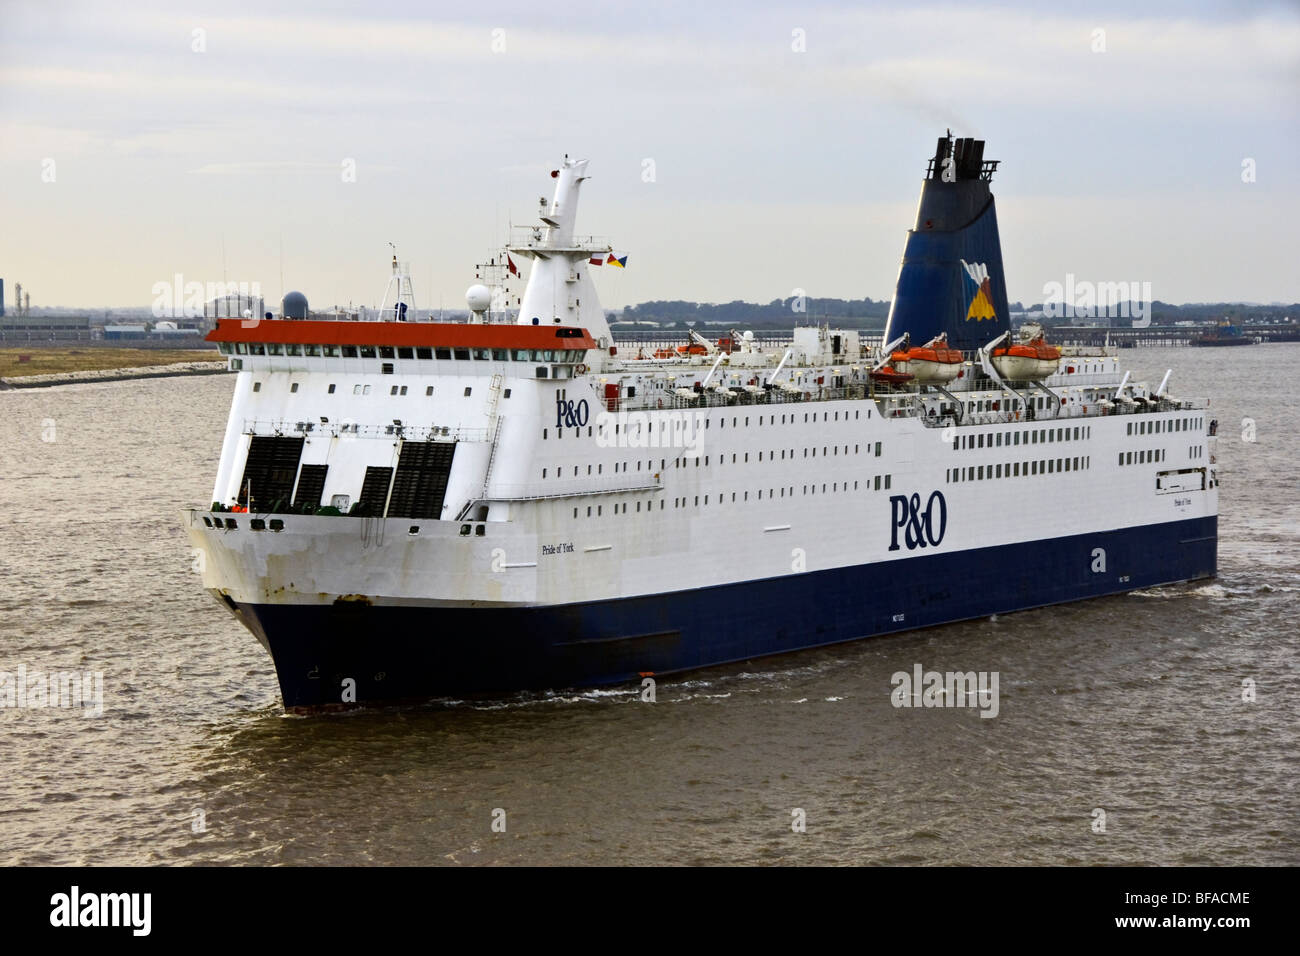 P&O Ferries Pride of York (ex Norsea) arriving at Hull from Zeebrugge - Stock Image